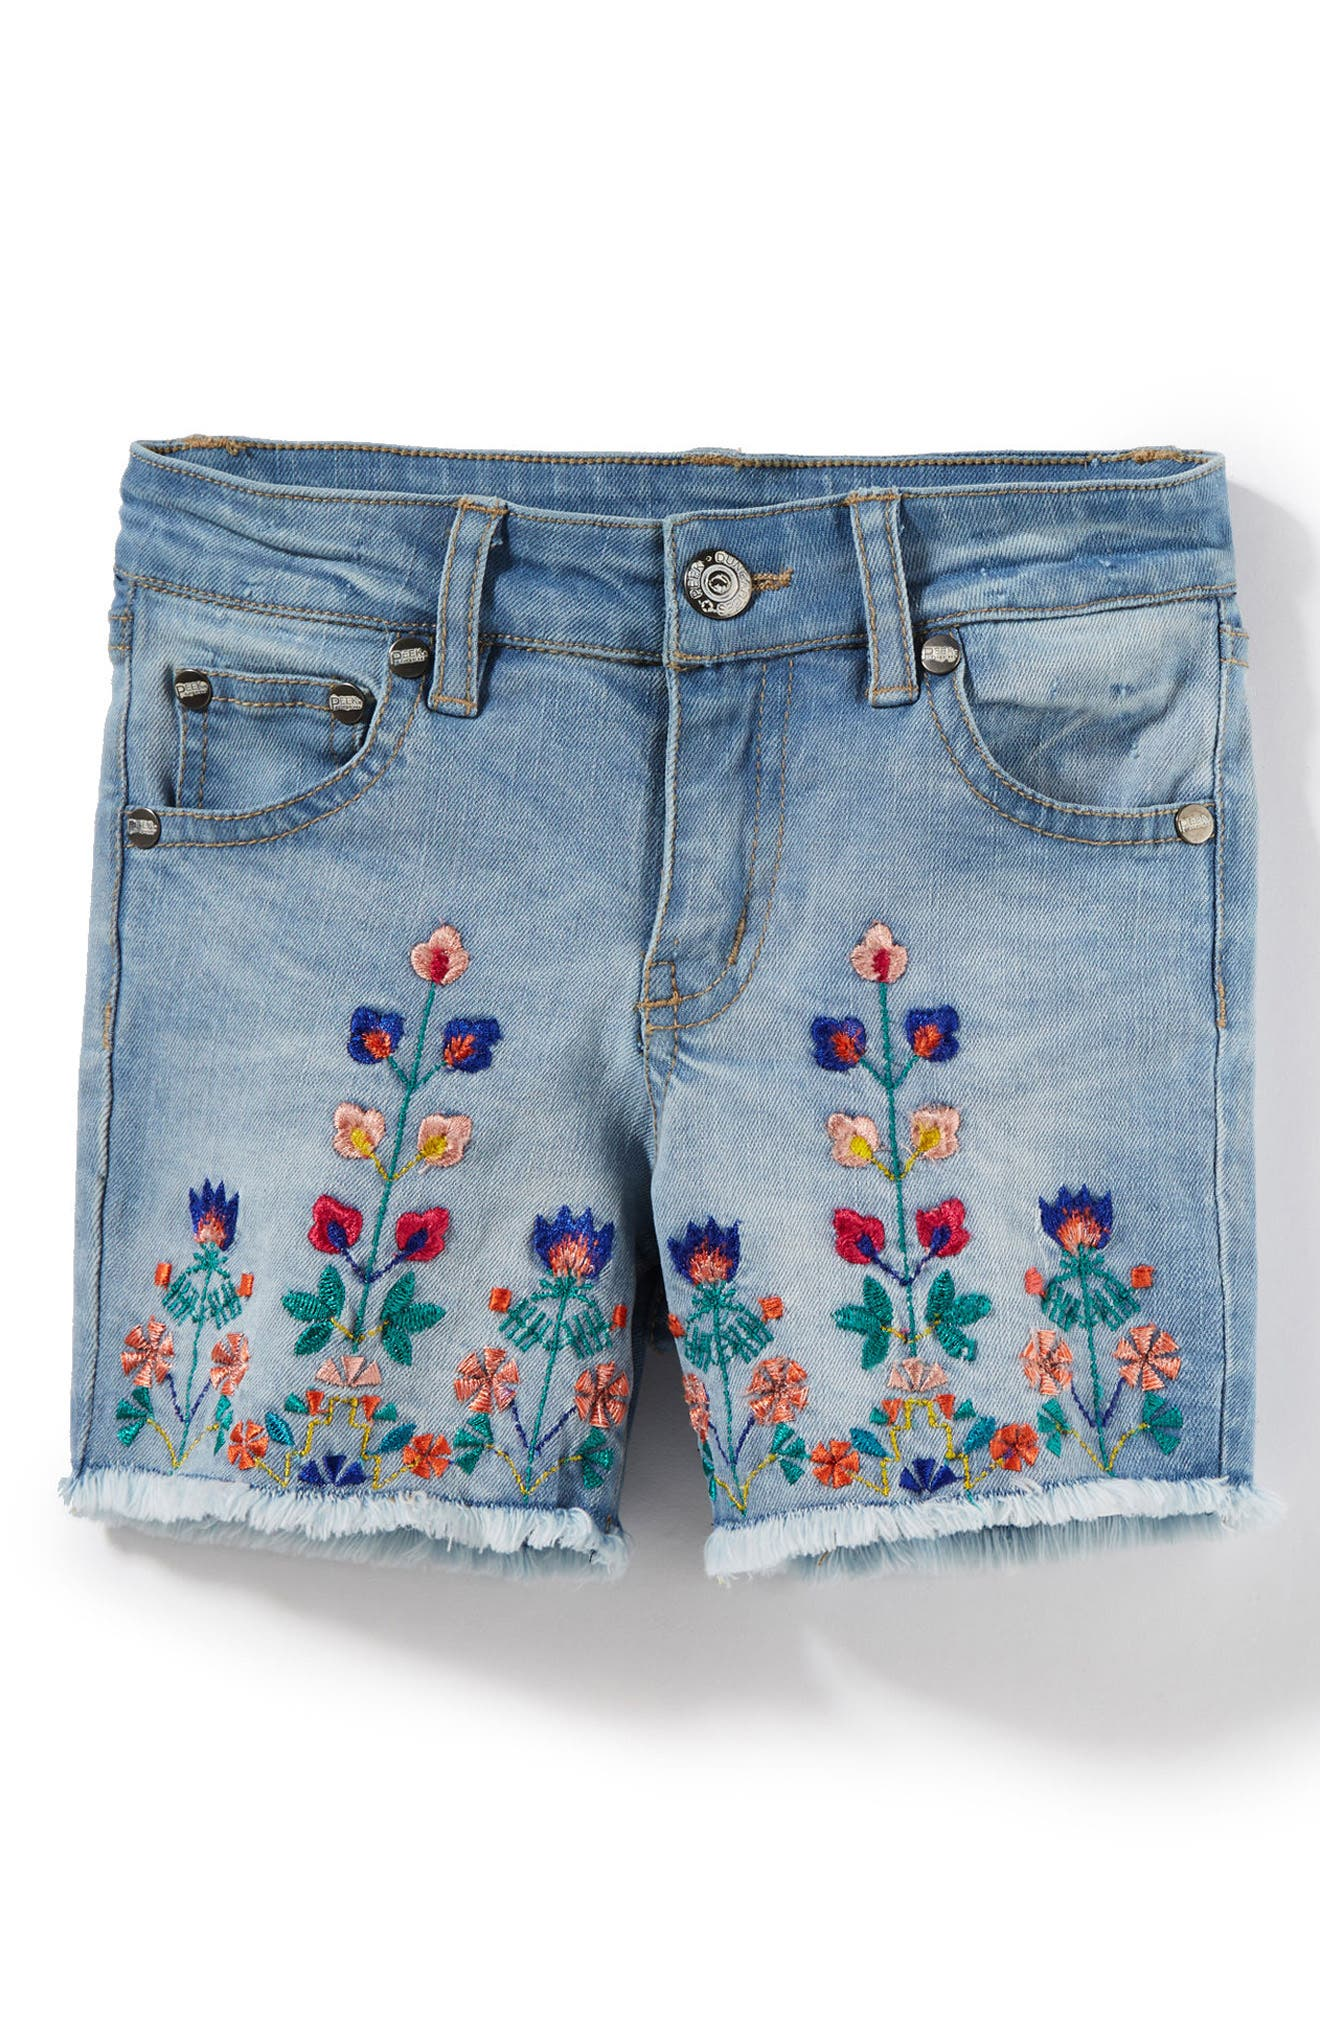 Griffin Embroidered Shorts,                             Main thumbnail 1, color,                             453